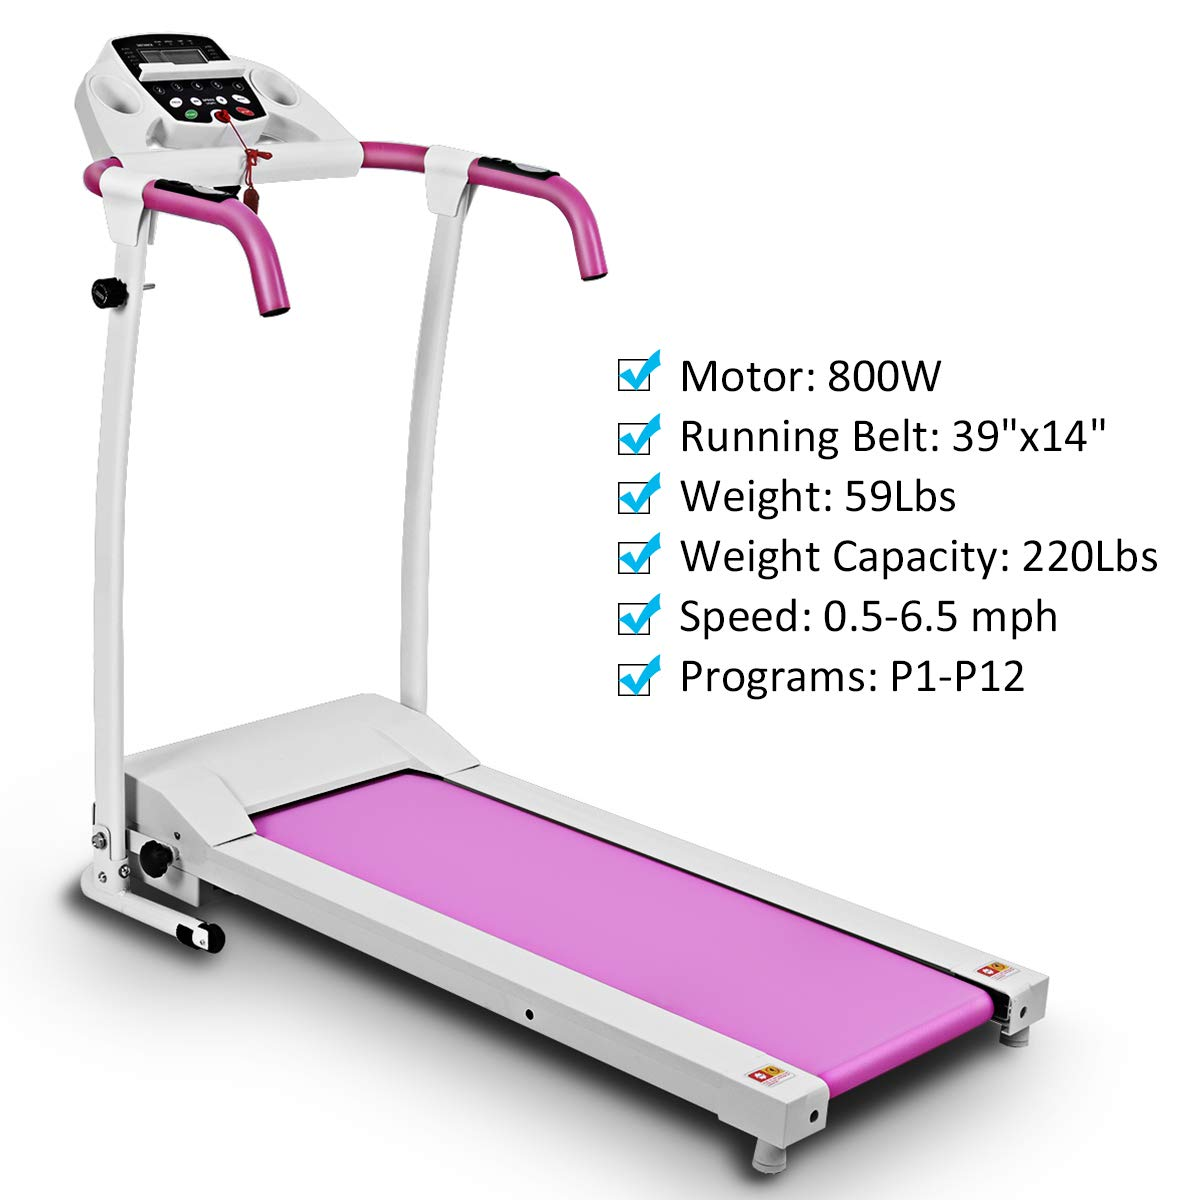 Goplus 800W Folding Treadmill Electric Motorized Power Fitness Running Machine with LED Display and Mobile Phone Holder Perfect for Home Use (Pink) by Goplus (Image #5)